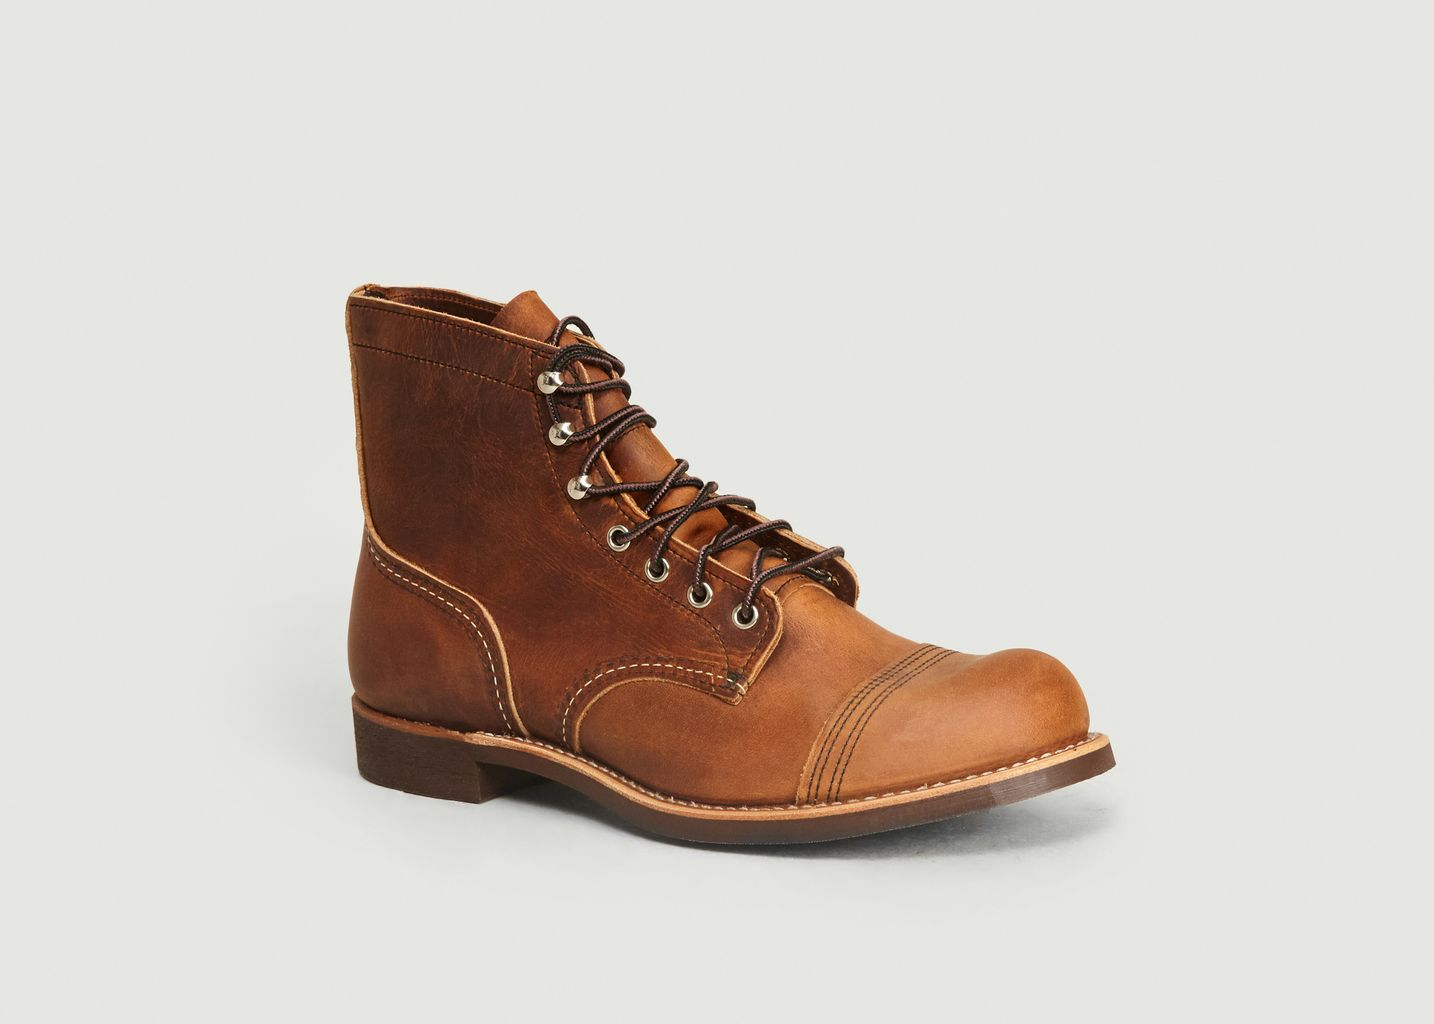 Boots Iron Ranger Copper Rough & Tough - Red Wing Shoes